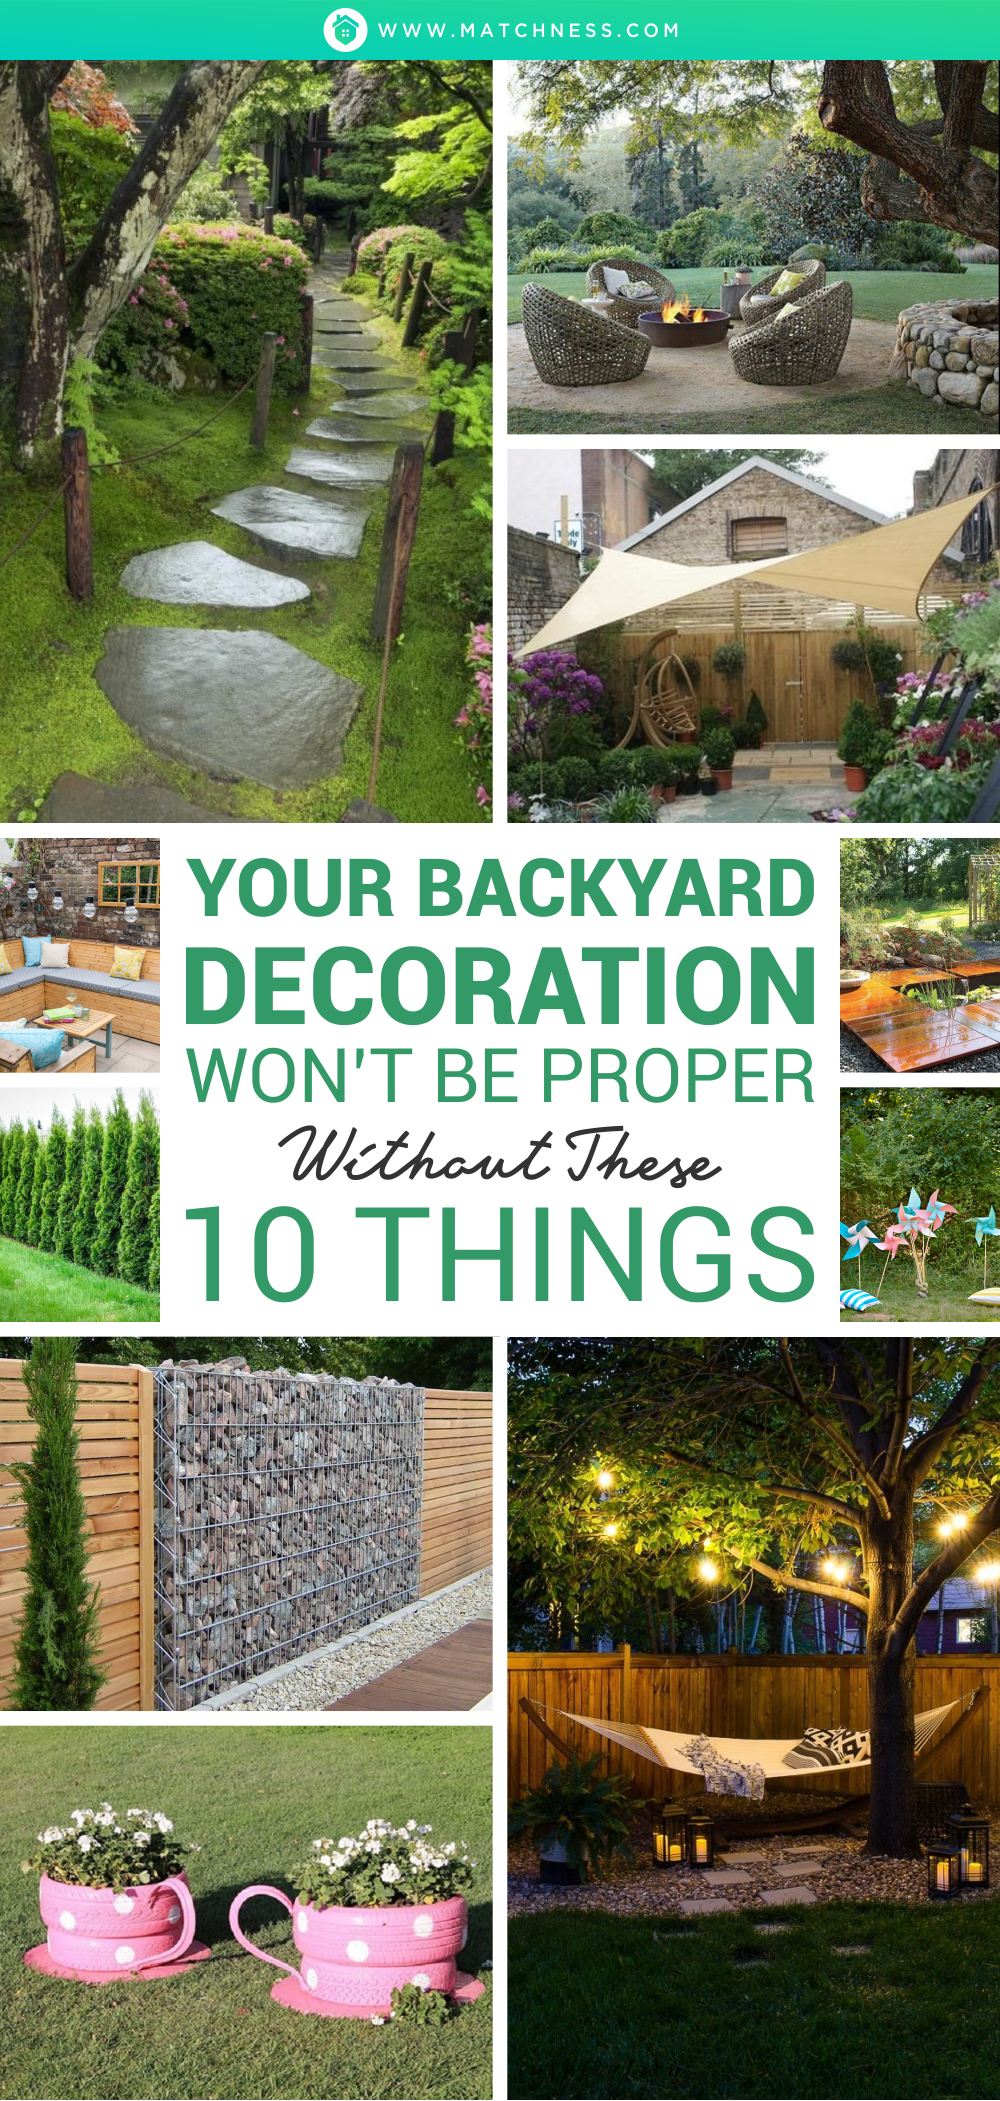 Your-backyard-decoration-wont-be-proper-without-these-10-things1